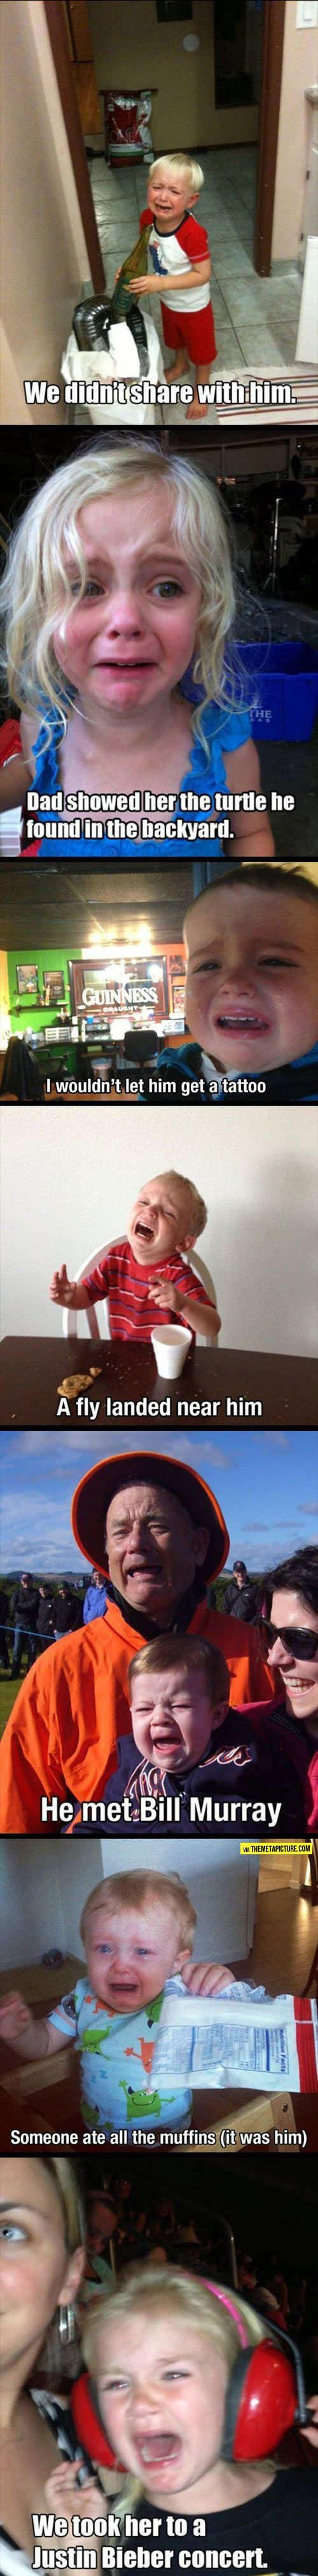 XD THE LAST ONE THOUGH: Crying Kid, Funny Kids Pictures, Children Quotes Funny, Funny Pictures And Quotes, Funny Stuff, Funny Baby, Funny Kid Quote, Funny Children Quotes